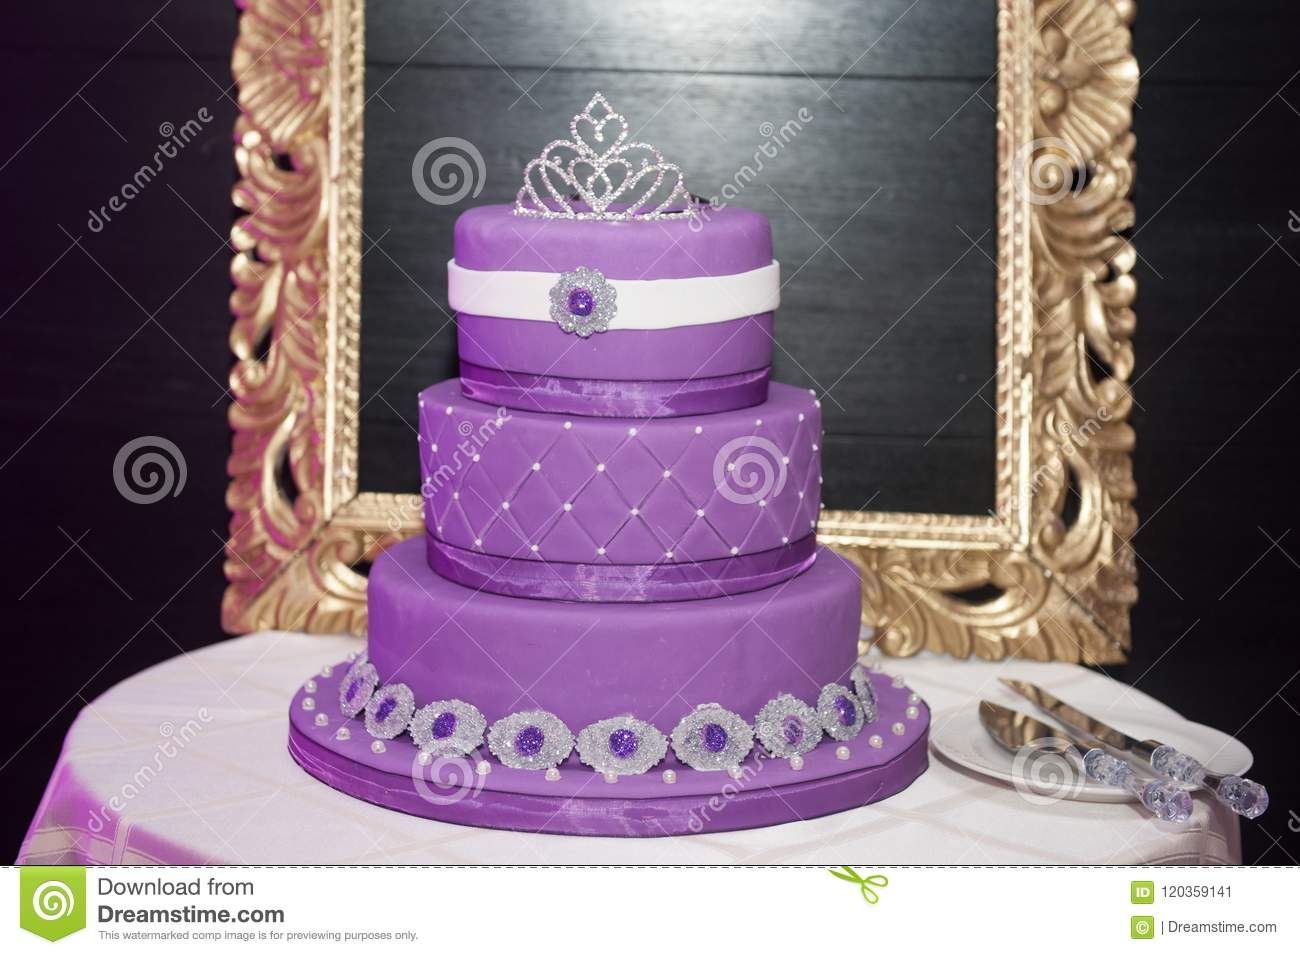 Sweet 16 Birthday Cake Sweet Sixteen Birthday Cake On A Cake Stand Stock Image Image Of